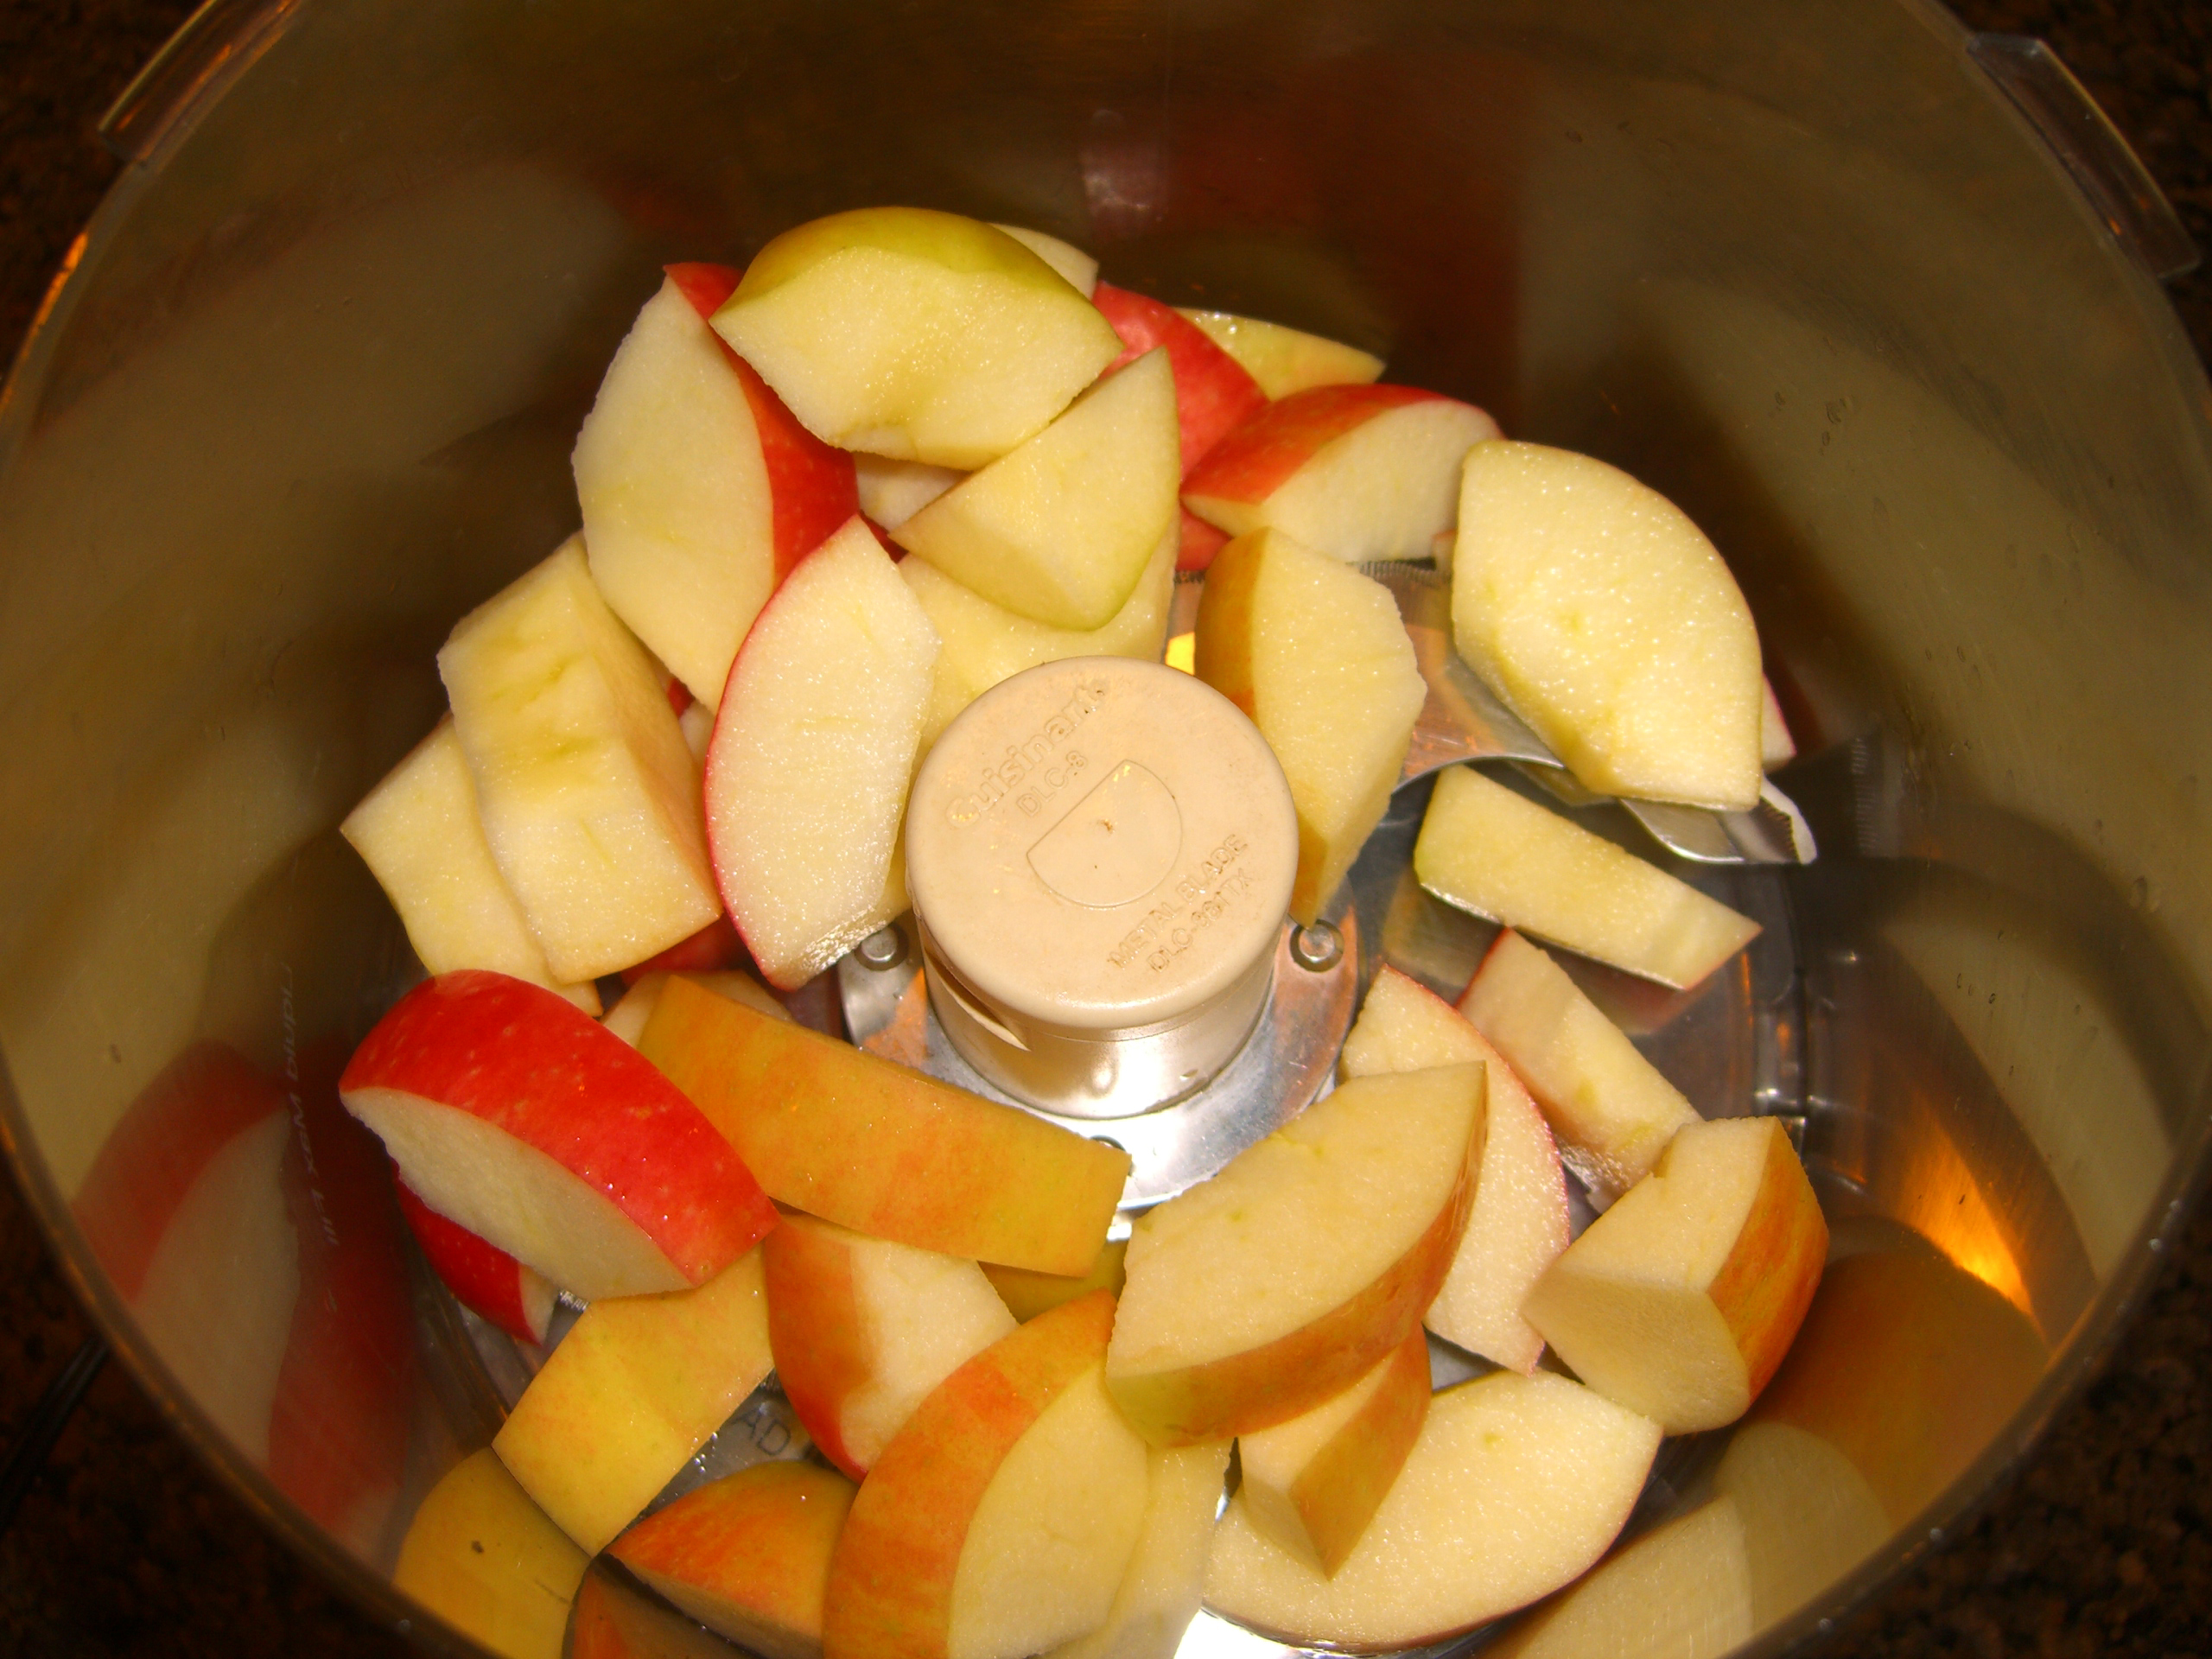 Put the Apples in the Food Processor